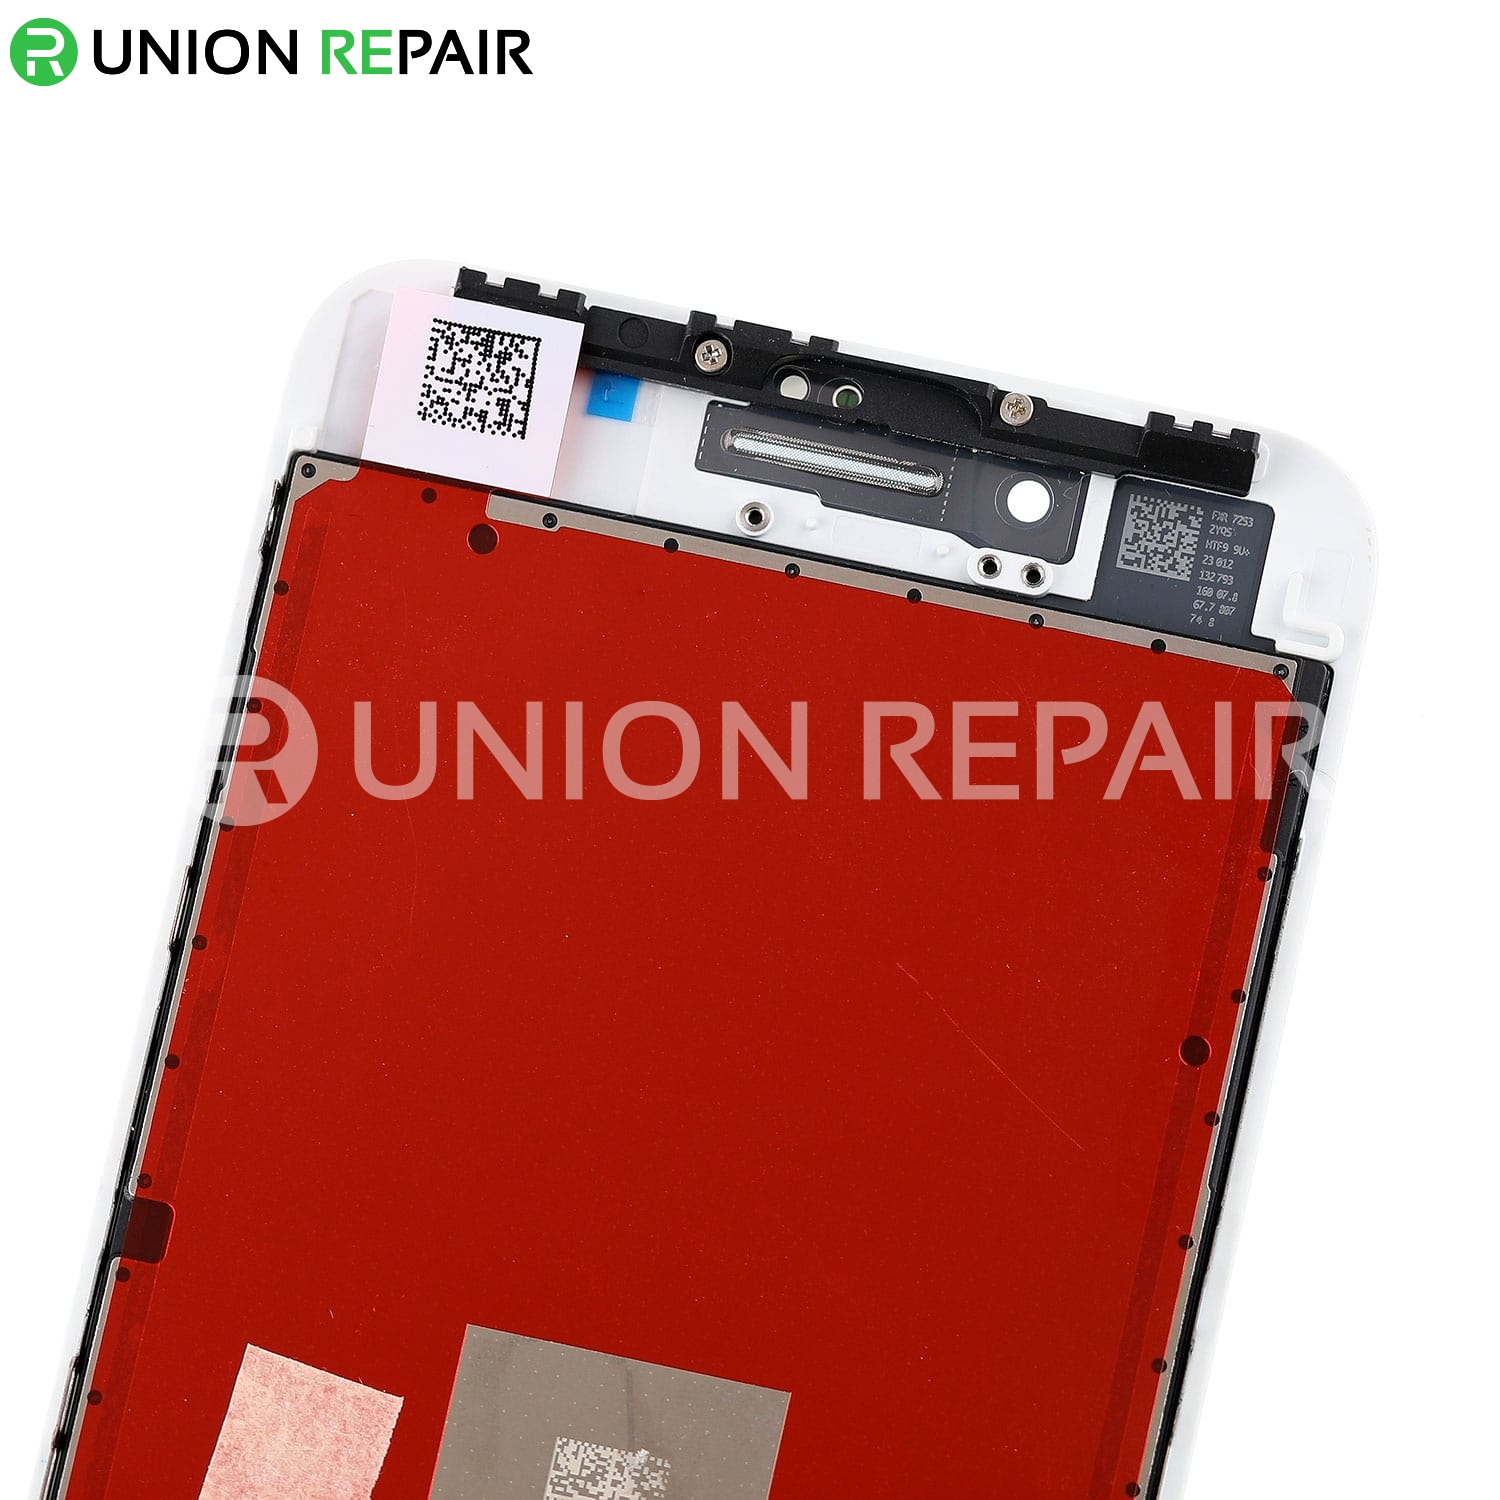 Replacement For iPhone 8 Plus LCD Screen and Digitizer Assembly - White